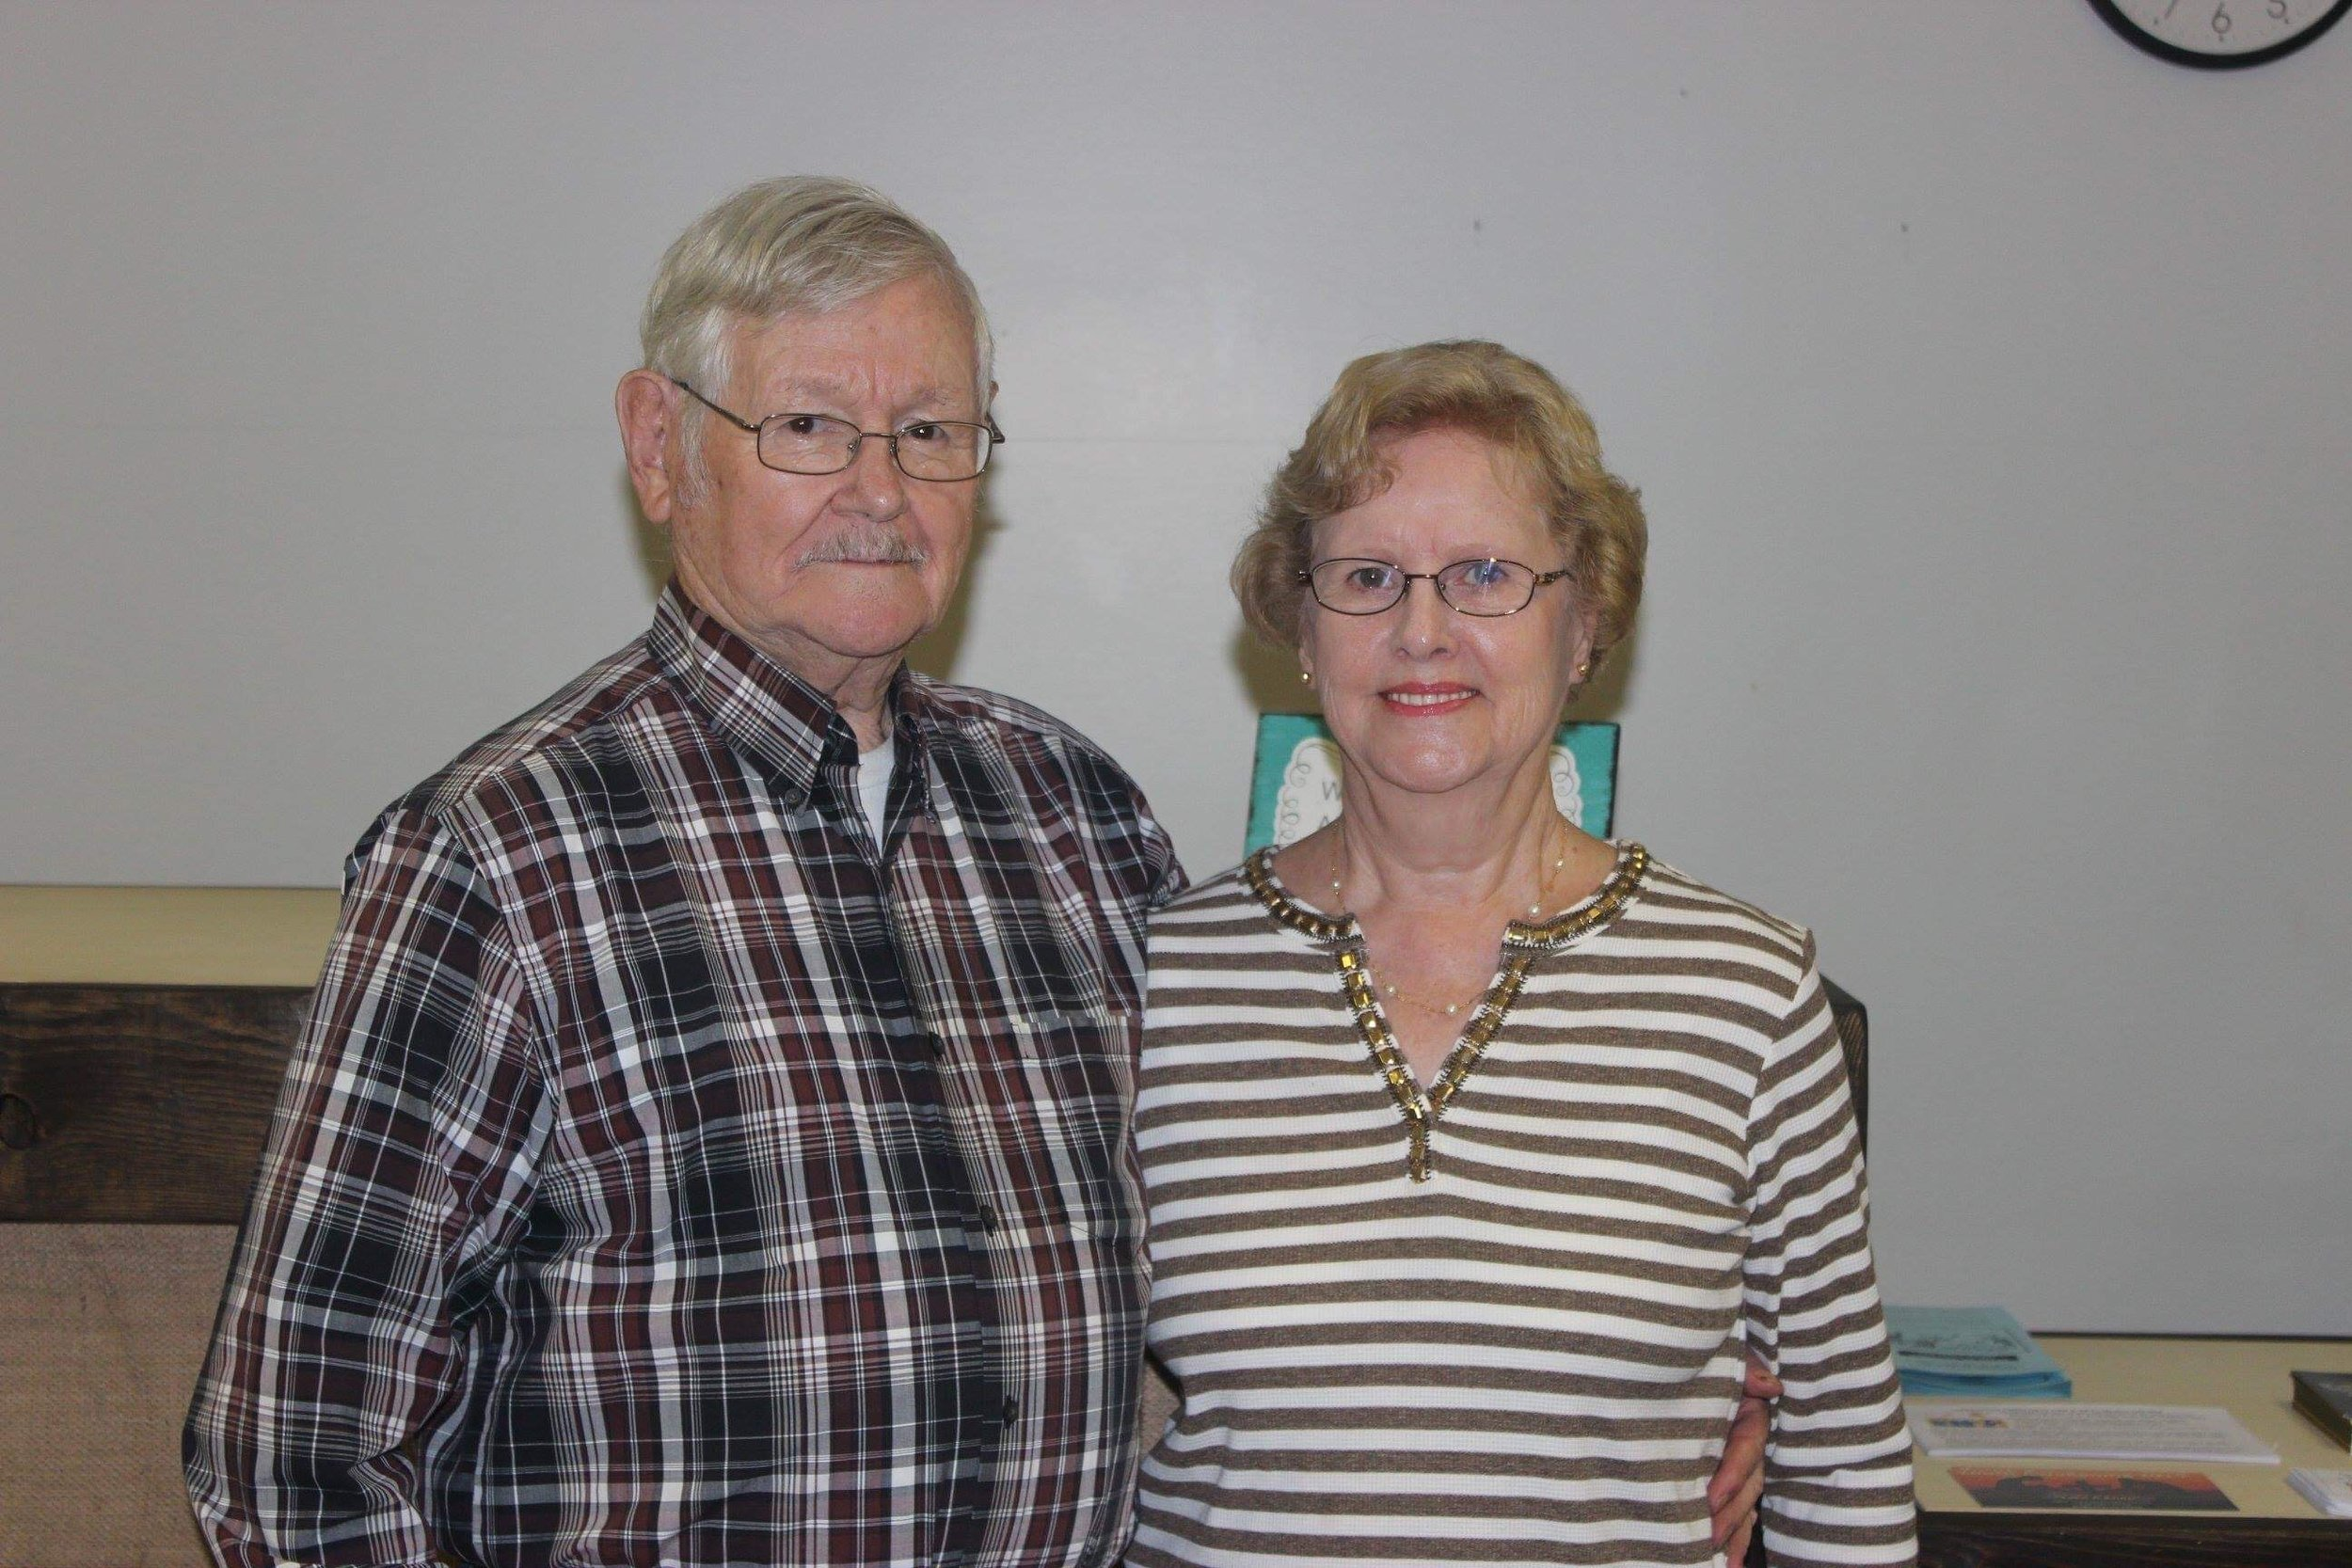 Harlie Harris Sr. - Visitation Pastor (Pictured with his wife, Reva)